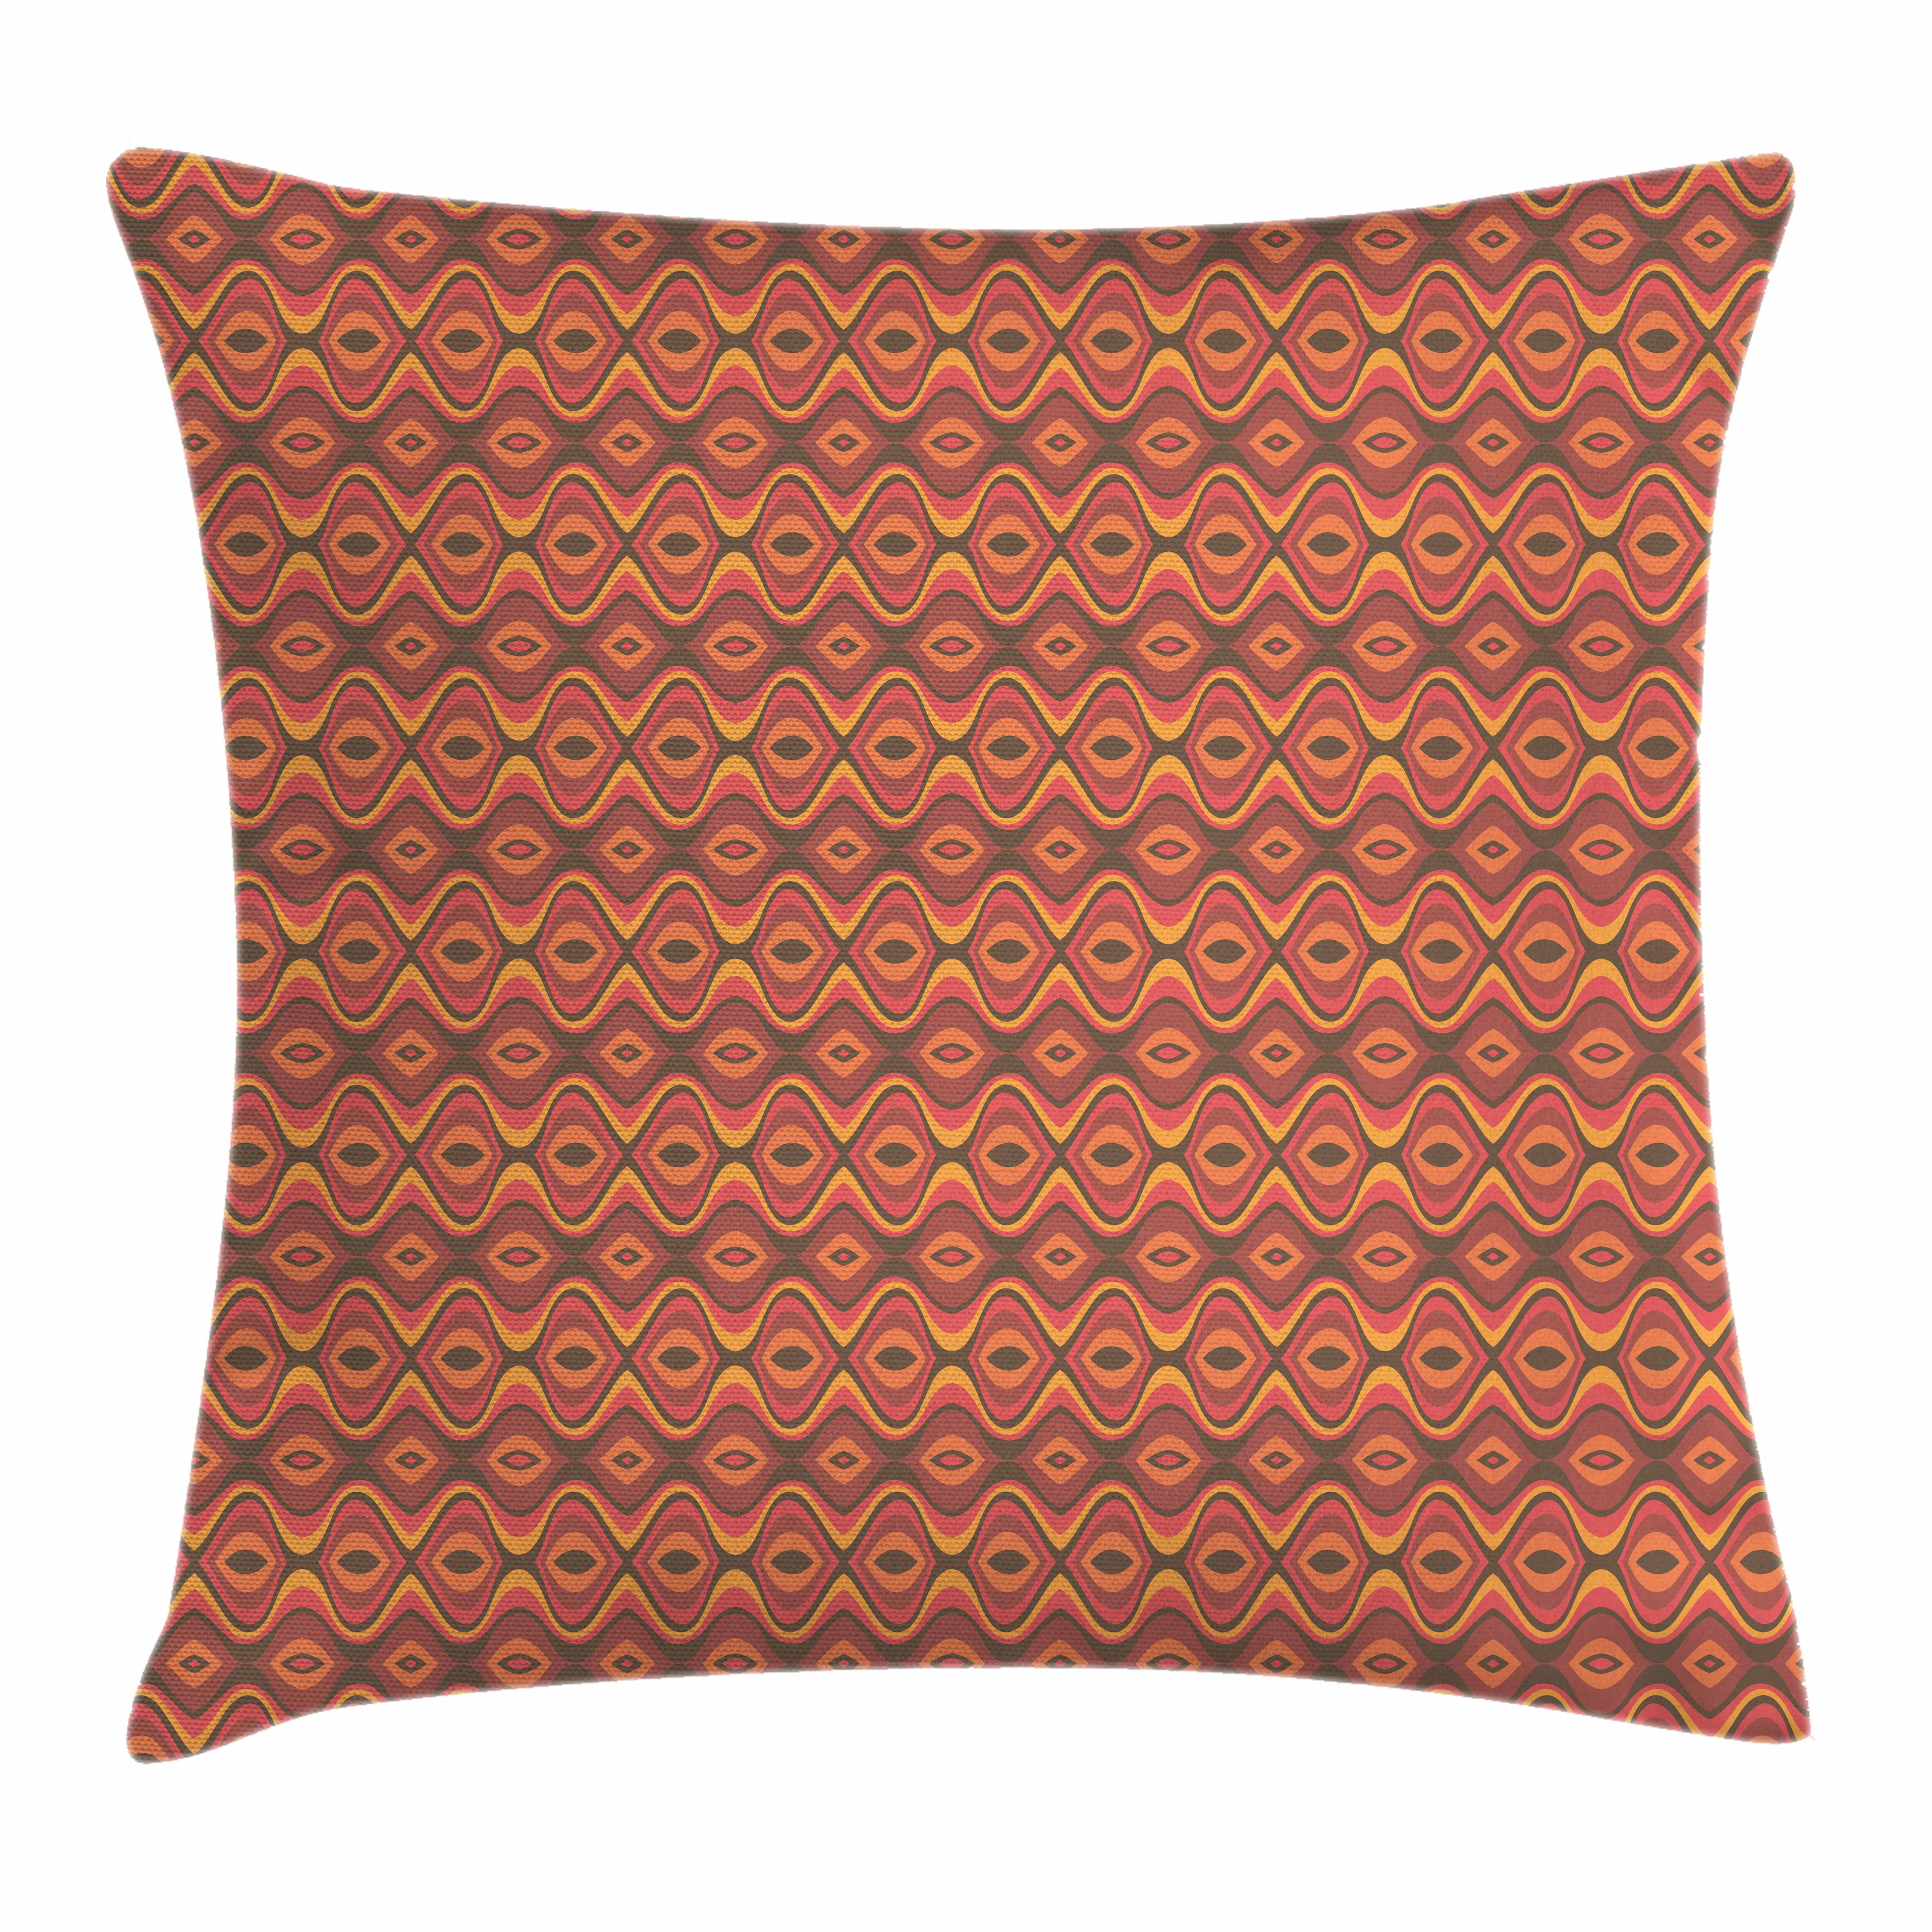 Geometric Throw Pillow Cushion Cover, Folk African Horizontal Traditional Stripes Wavy Hippie Print, Decorative Square Accent Pillow Case, 16 X 16 Inches, Dark Coral Dried Rose Marigold, by Ambesonne